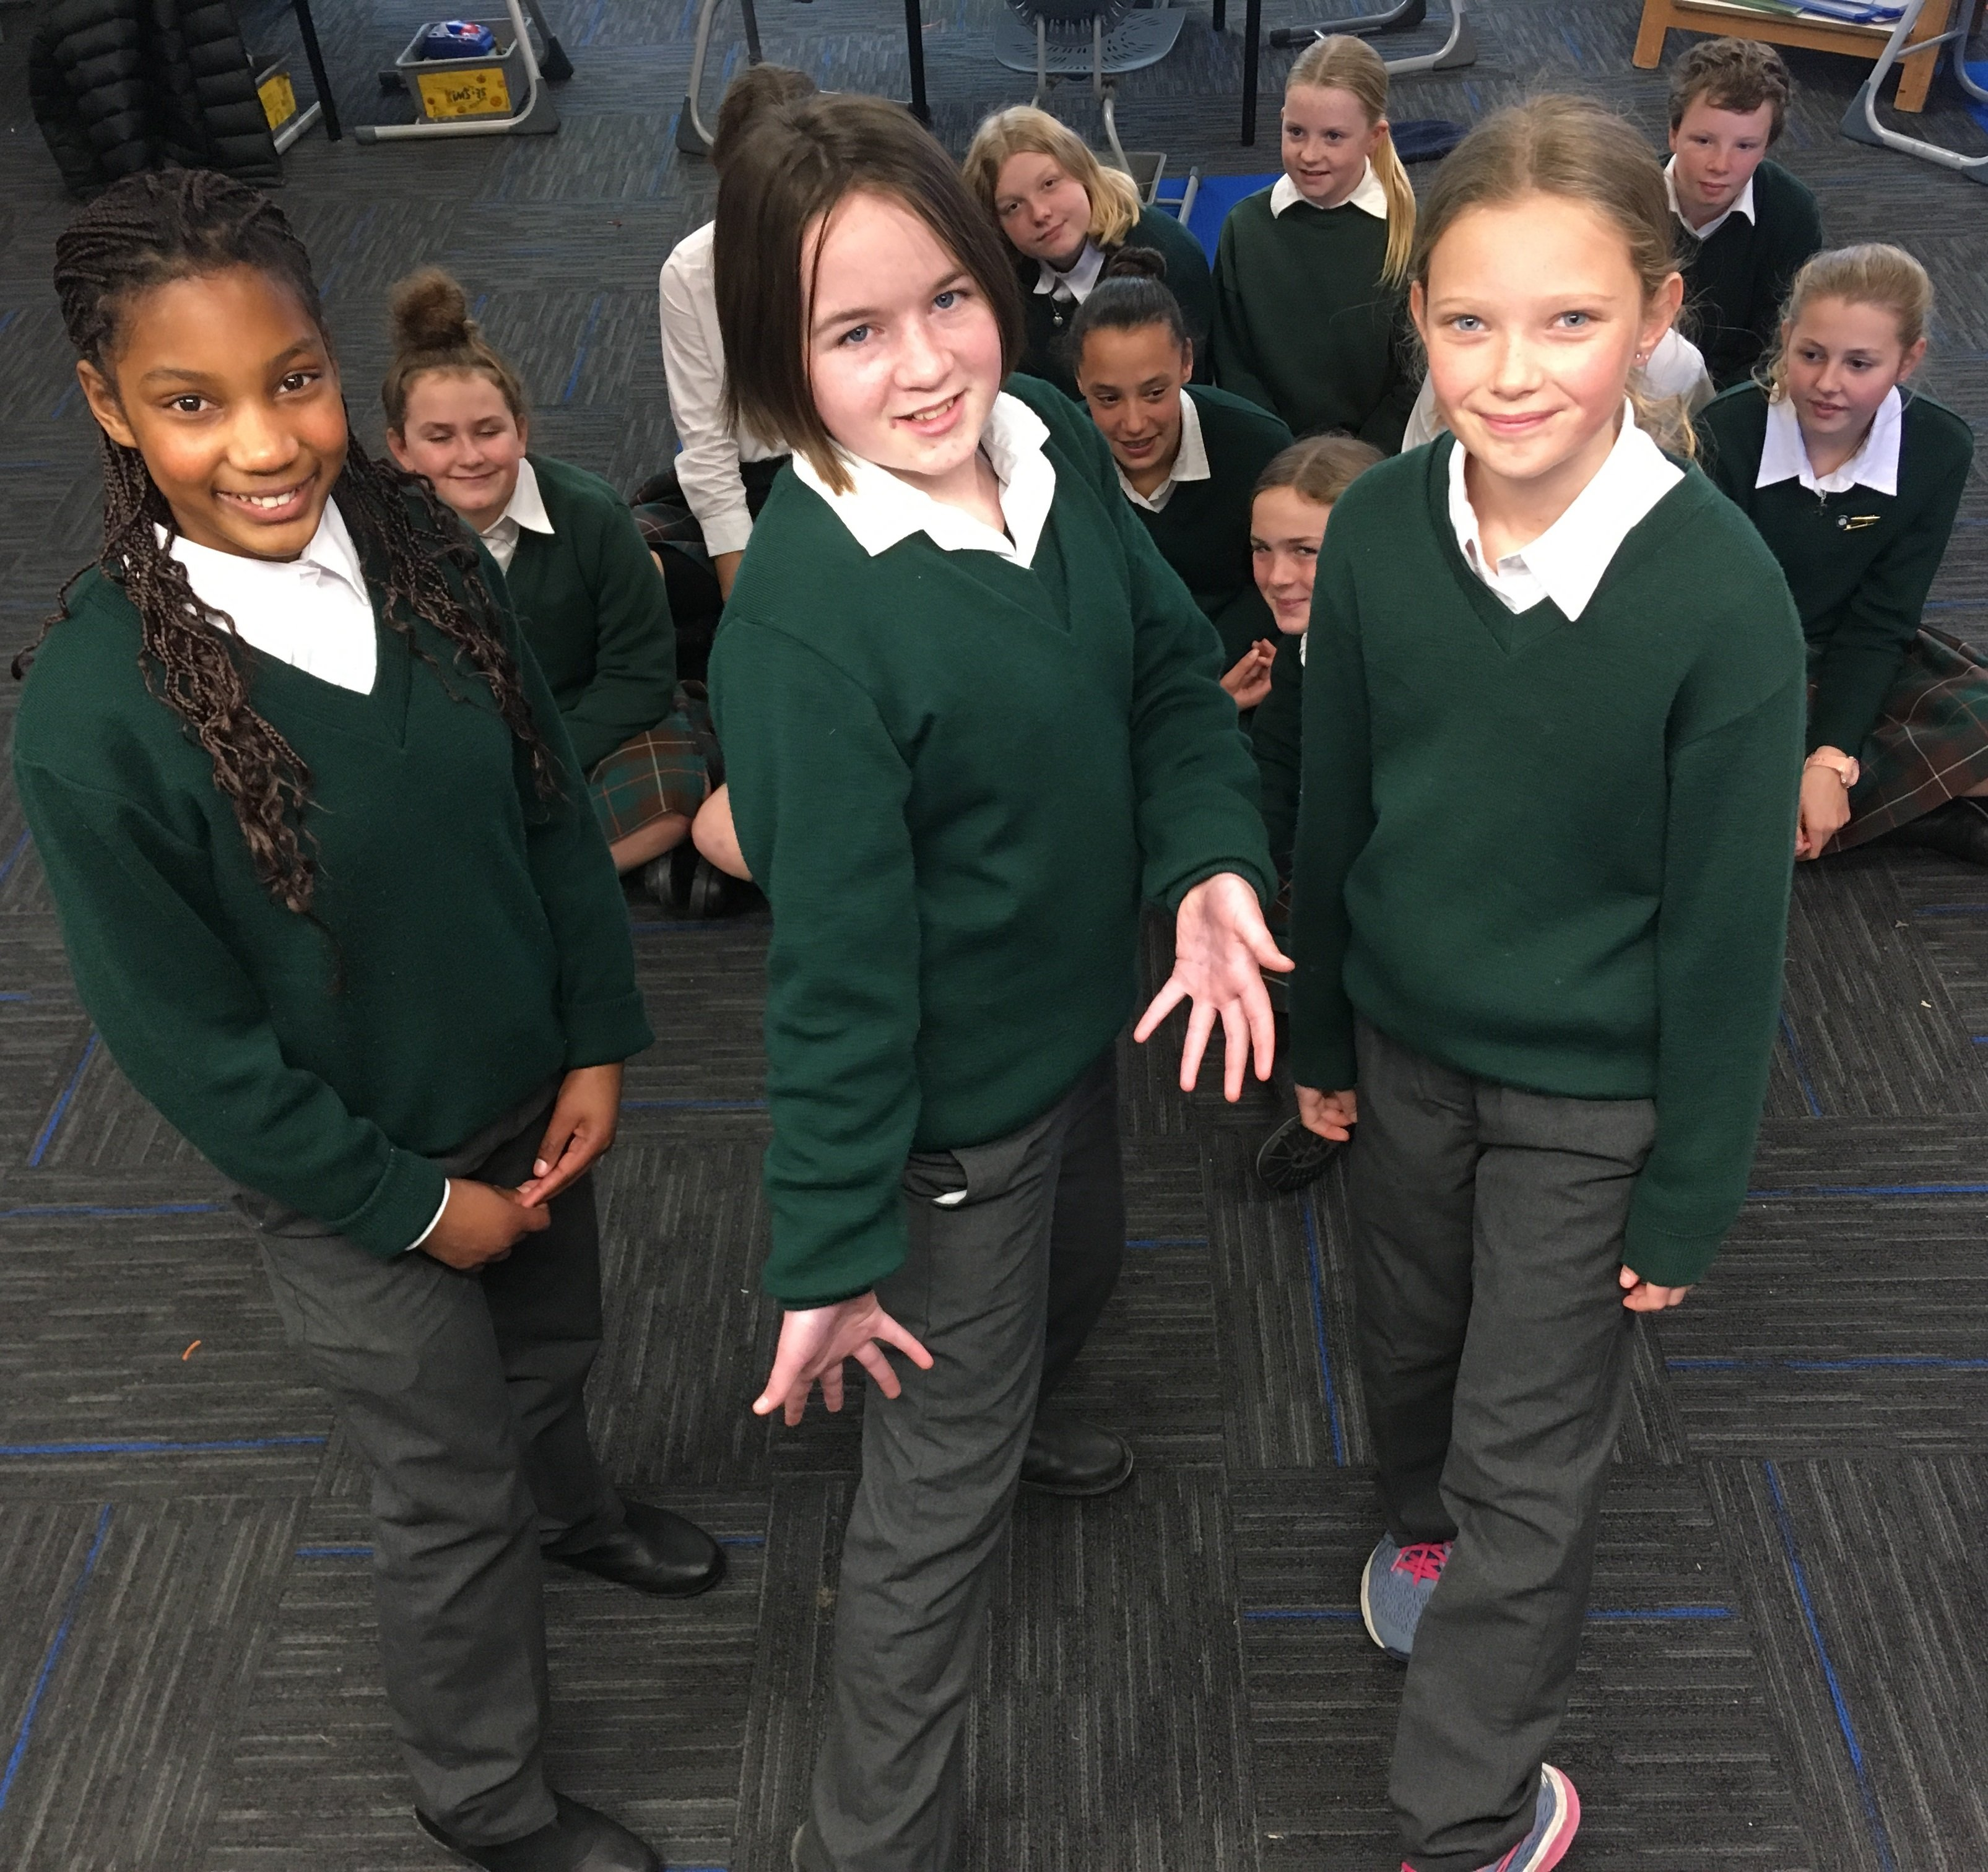 Modelling the school's new winter trousers option for girls are (from left) St Gerard's pupils Kimberley Dacosta (12), Dani Dowling (11) and Keira McFadyen (11). Photo: Adam Burns